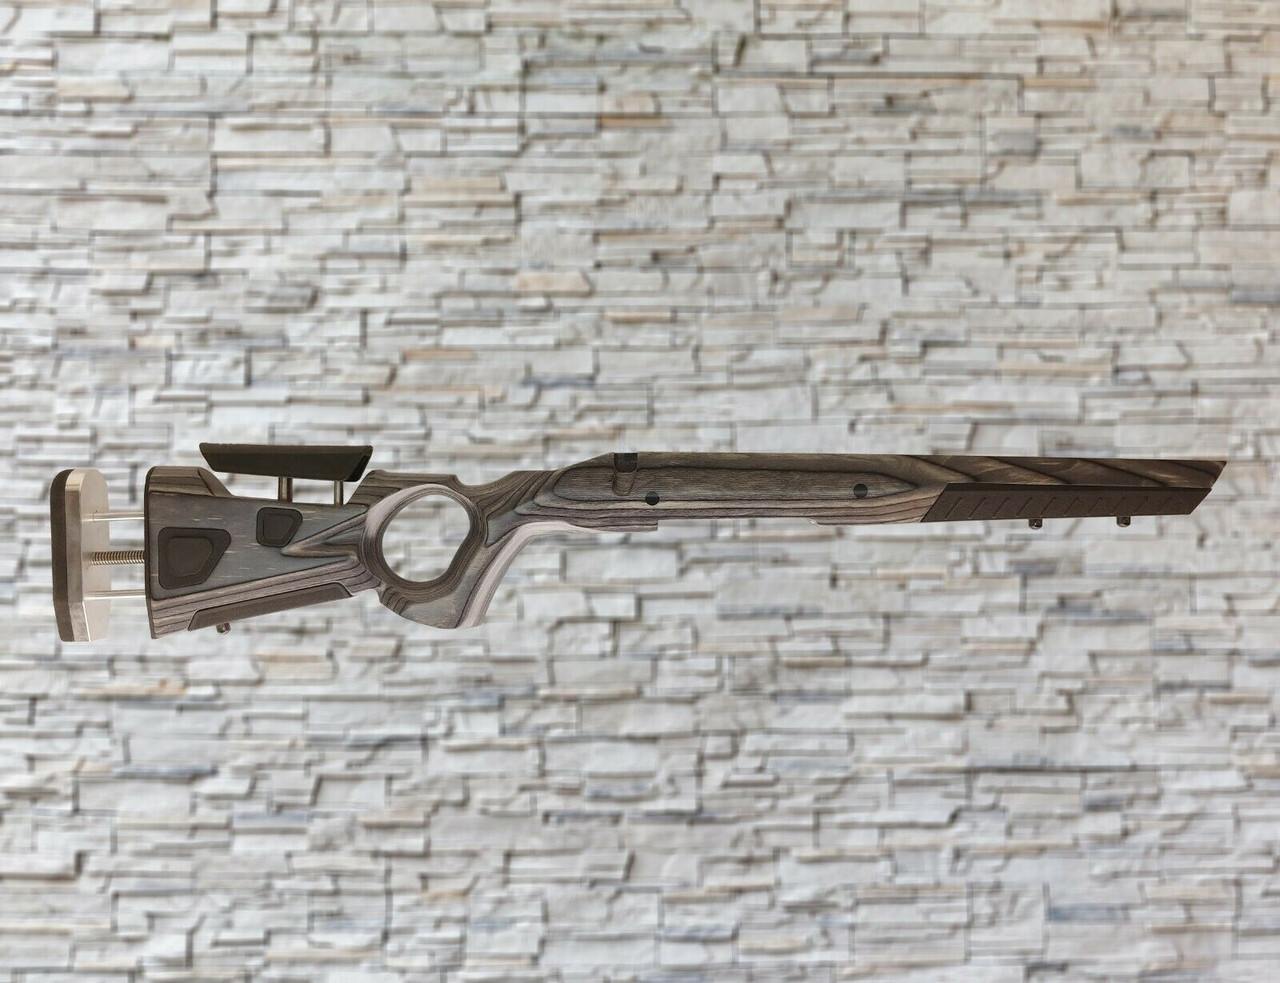 Boyds At-One Thumbhole Wood Stock Pepper For Remington 770 Tapered Barrel Rifle